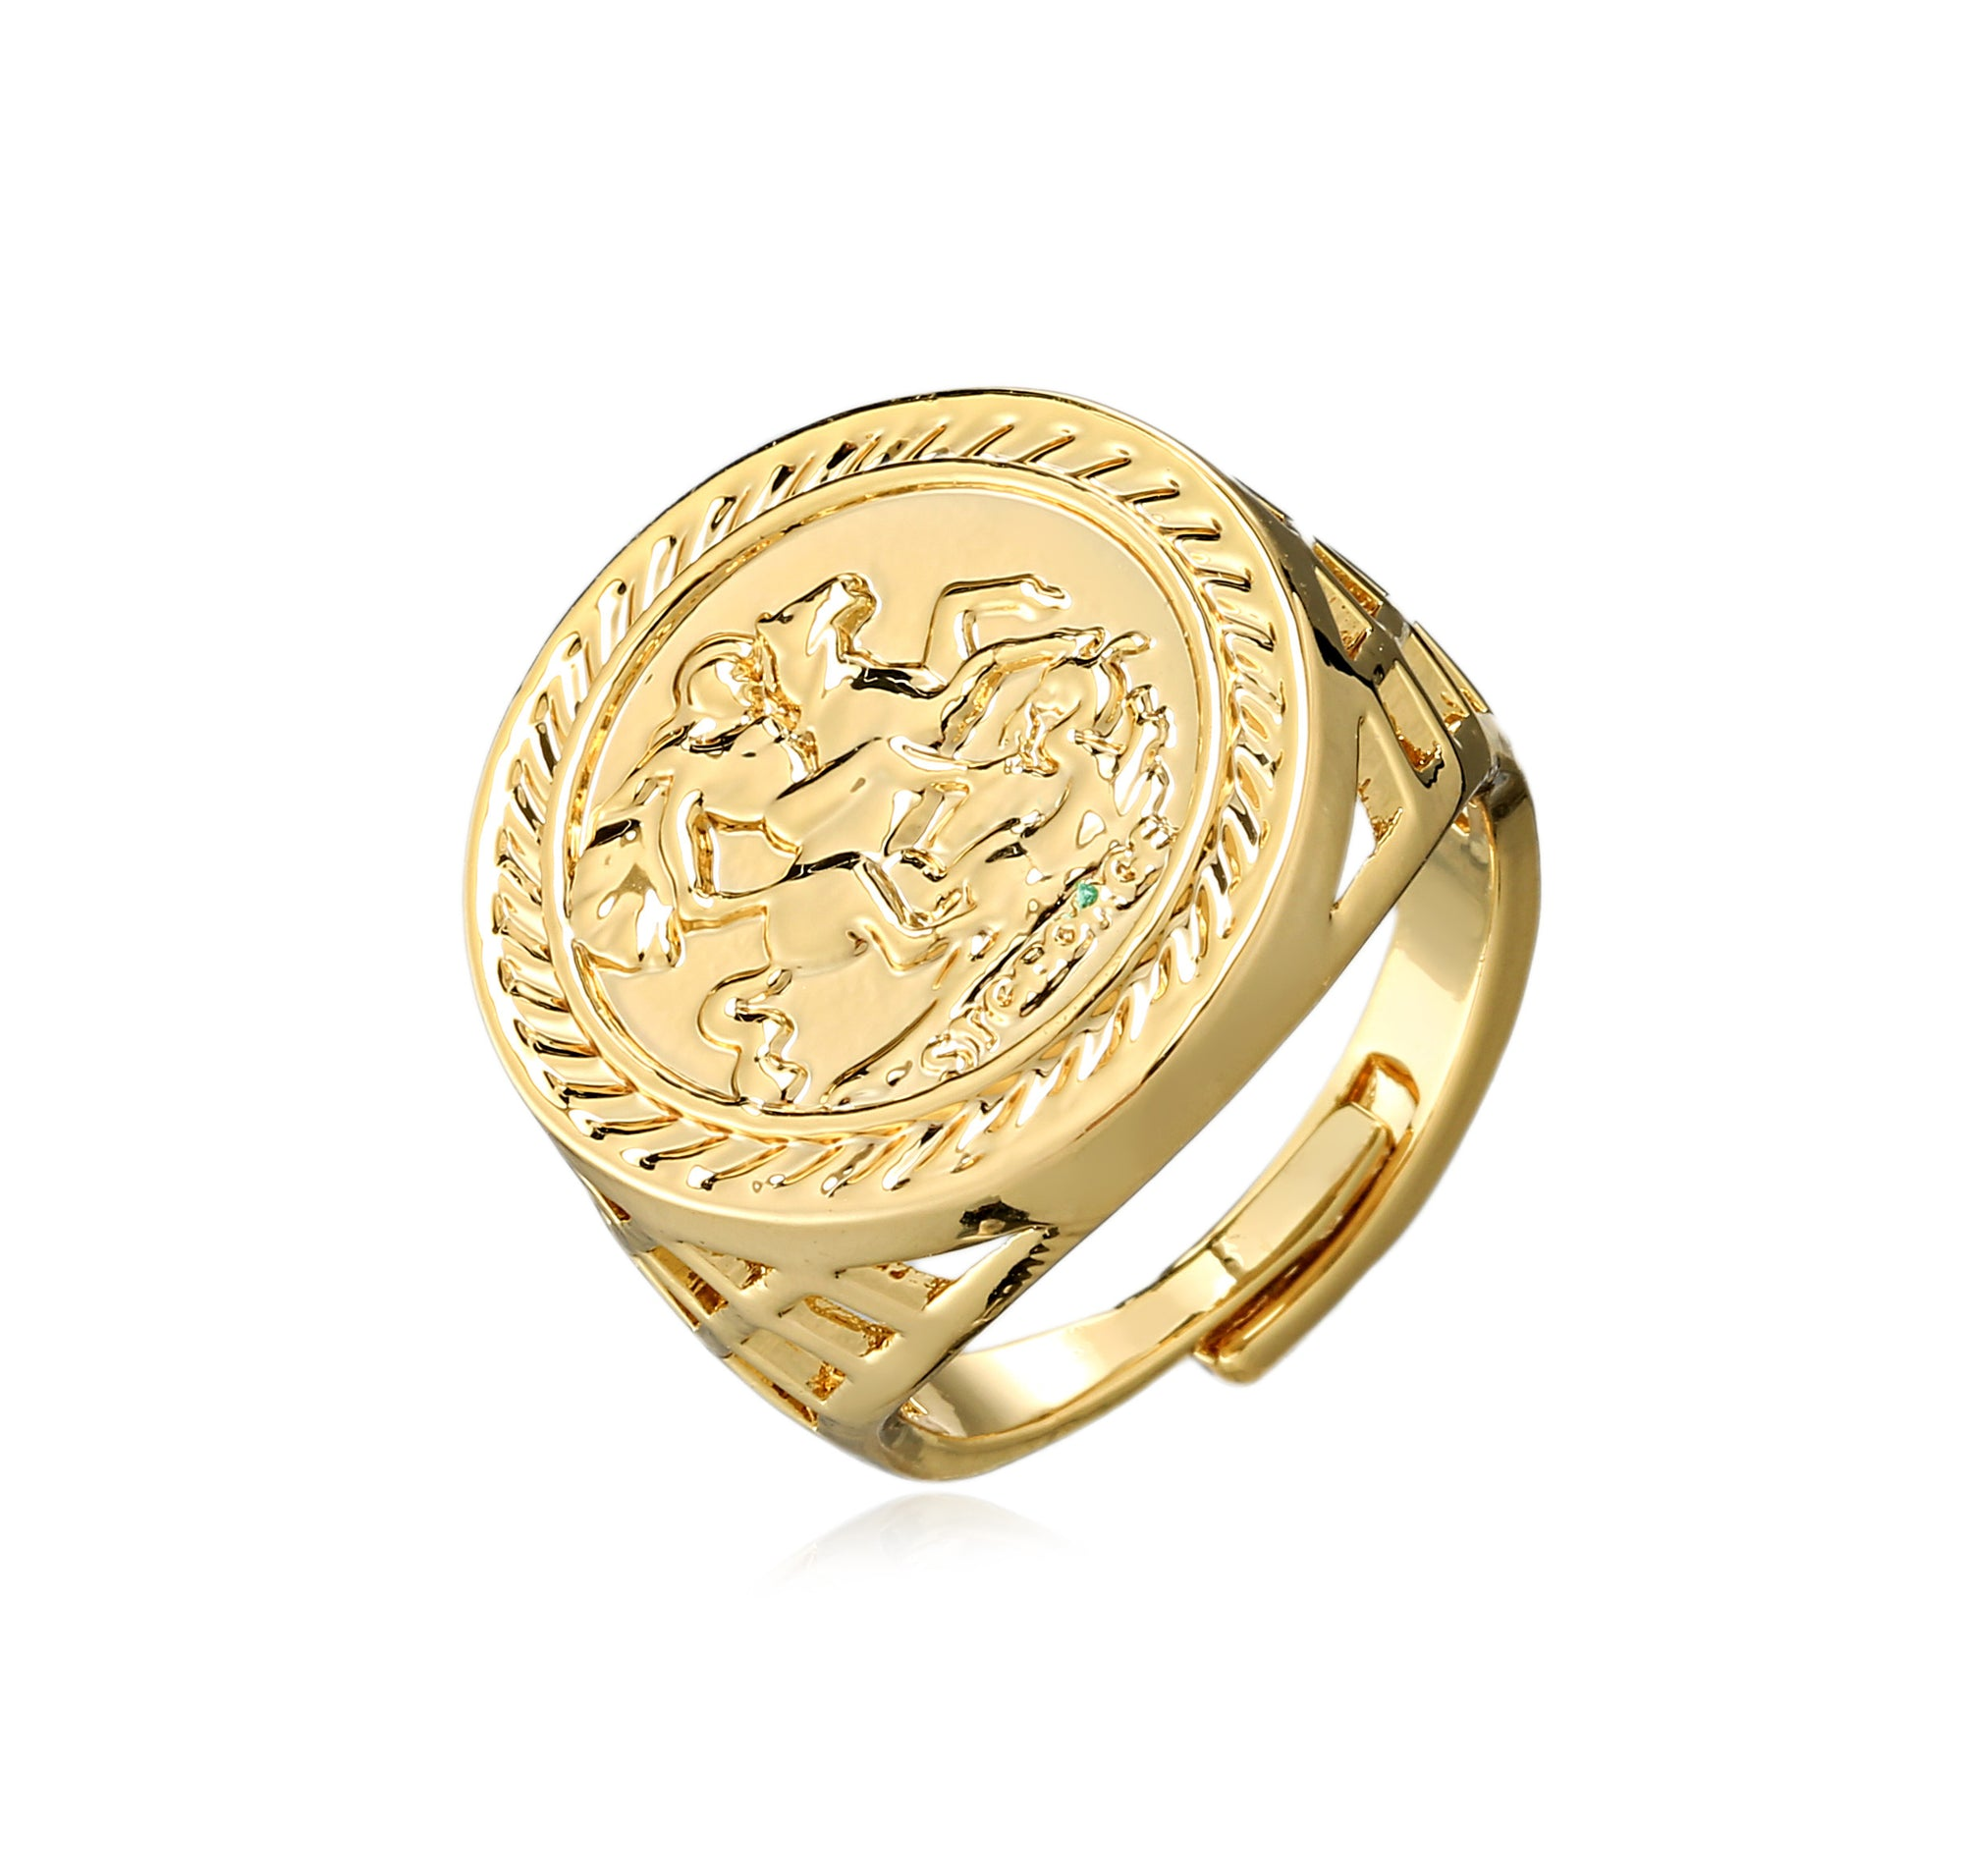 Gold St George Sovereign Ring-Rings-The Bling King-Bling King